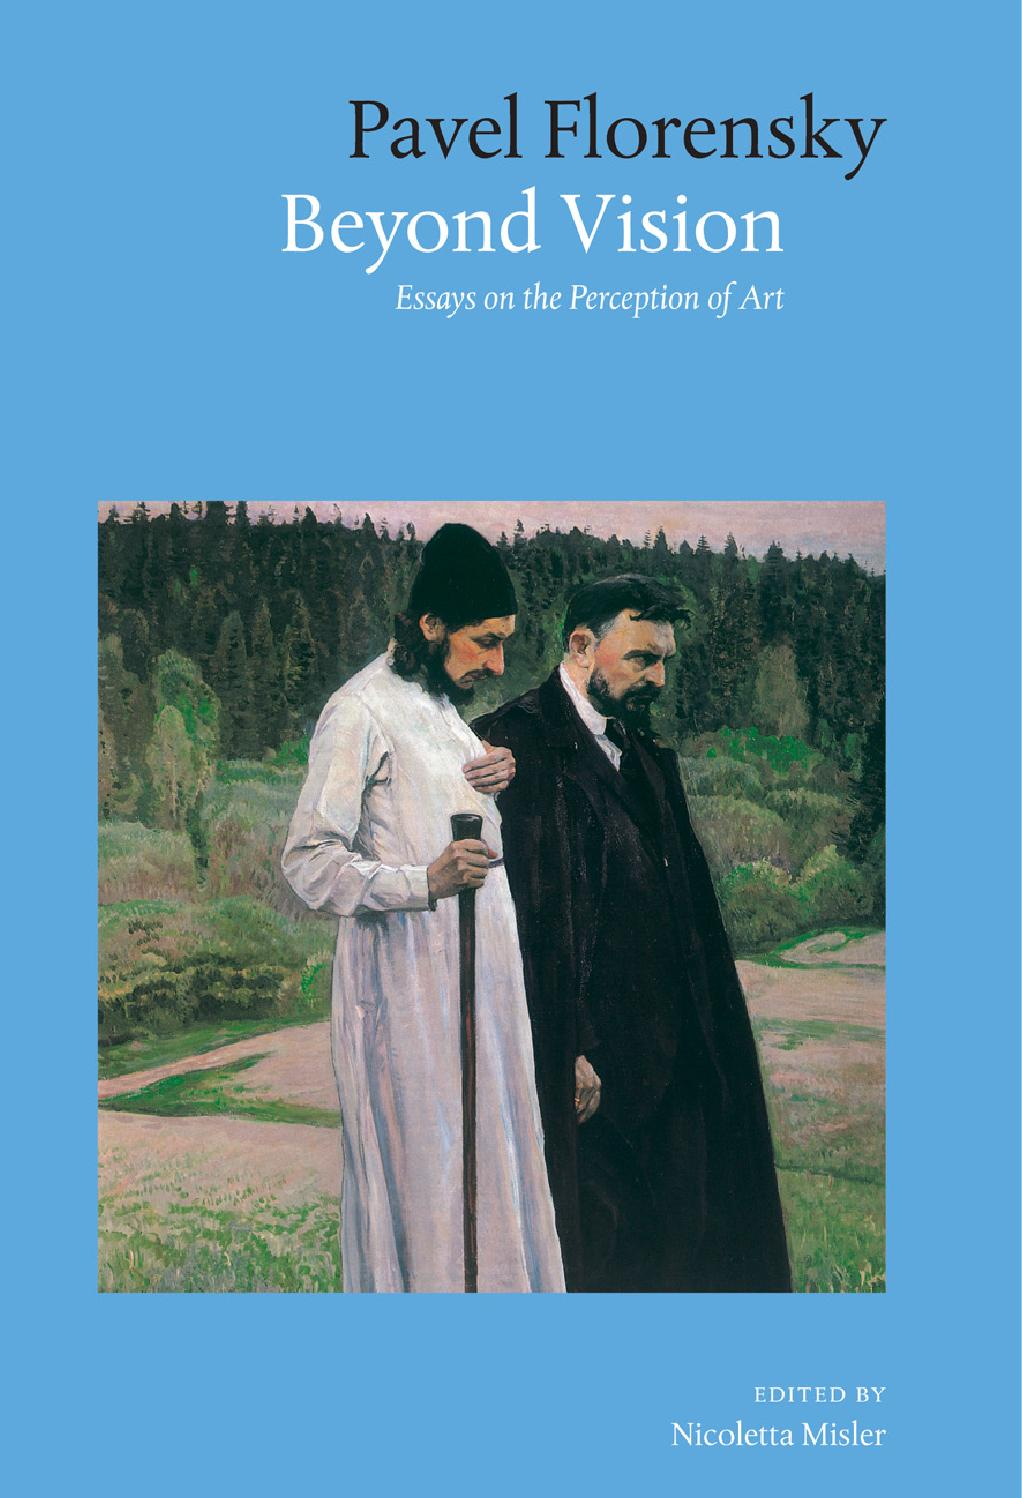 pavel florensky beyond vision essays on the perception of art pavel florensky beyond vision essays on the perception of art by jbfb issuu